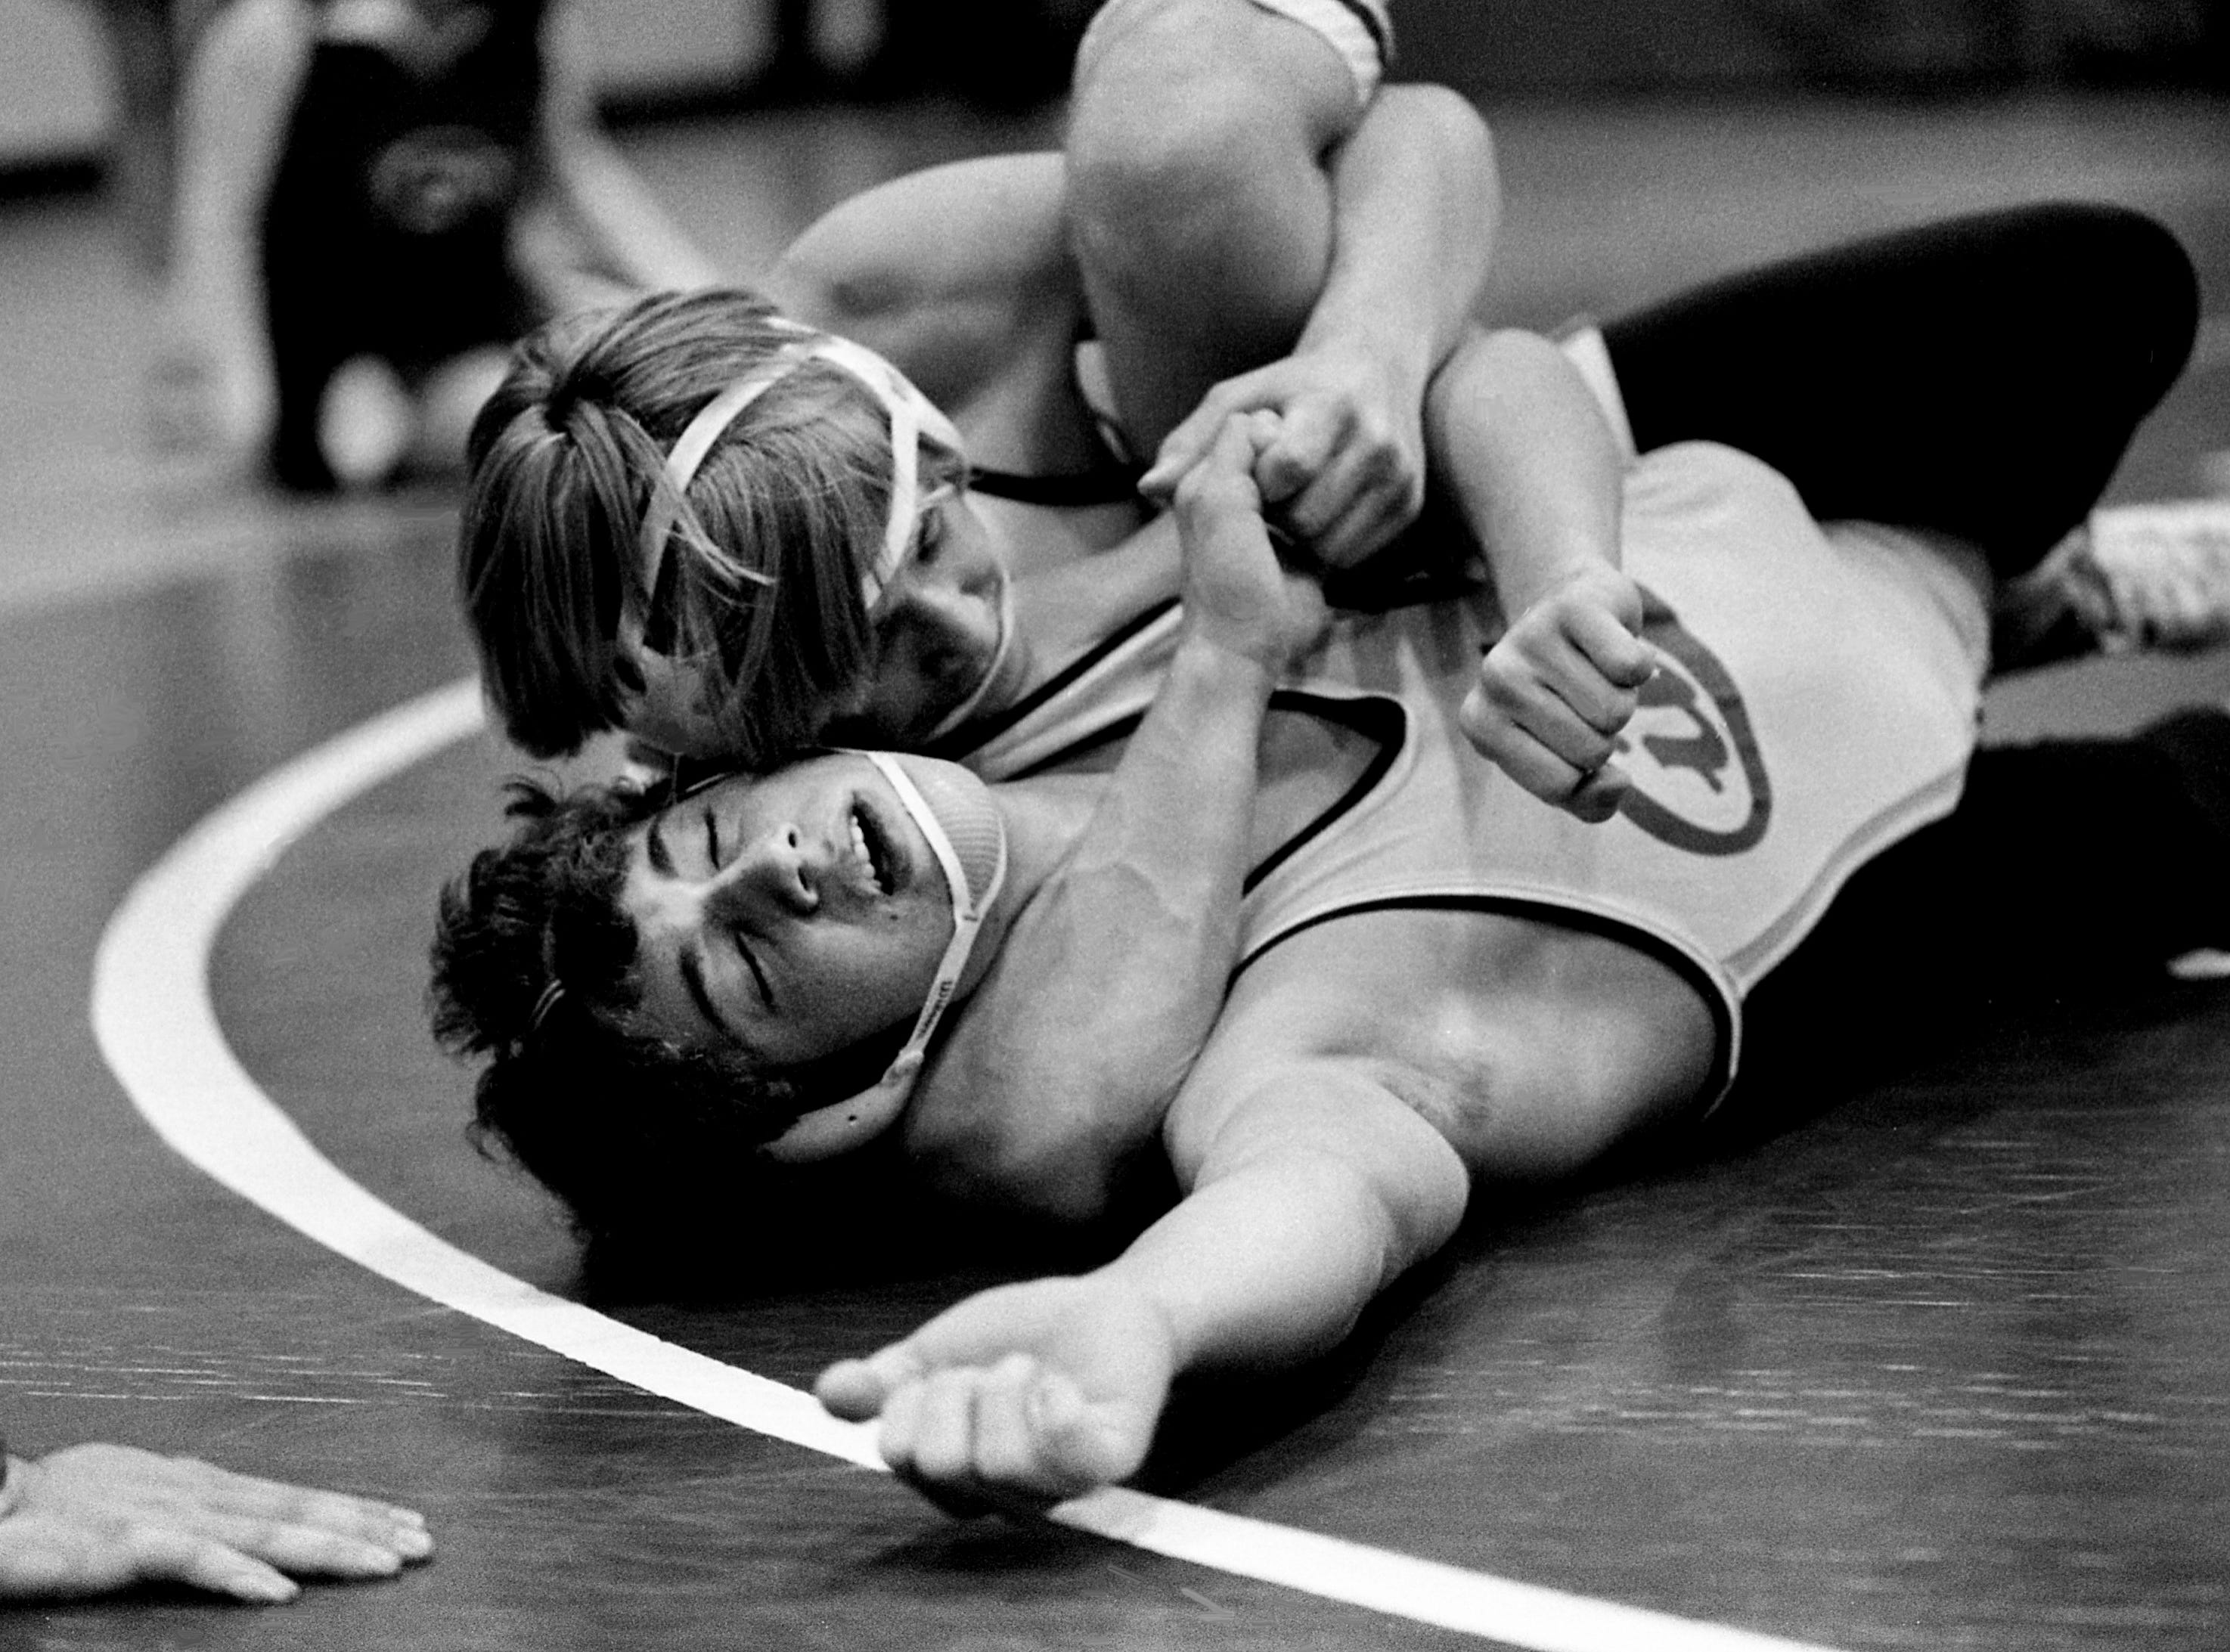 Terry Canady, top, of Hillwood High has the upper hand, not to mention a tight grip, on Todd Corn of Cheatham County High during first round action of the 145-pound division of the Bellevue Invitational wrestling tournament Jan. 19, 1979. Canady went on to a 20-3 victory to move on to the next round.